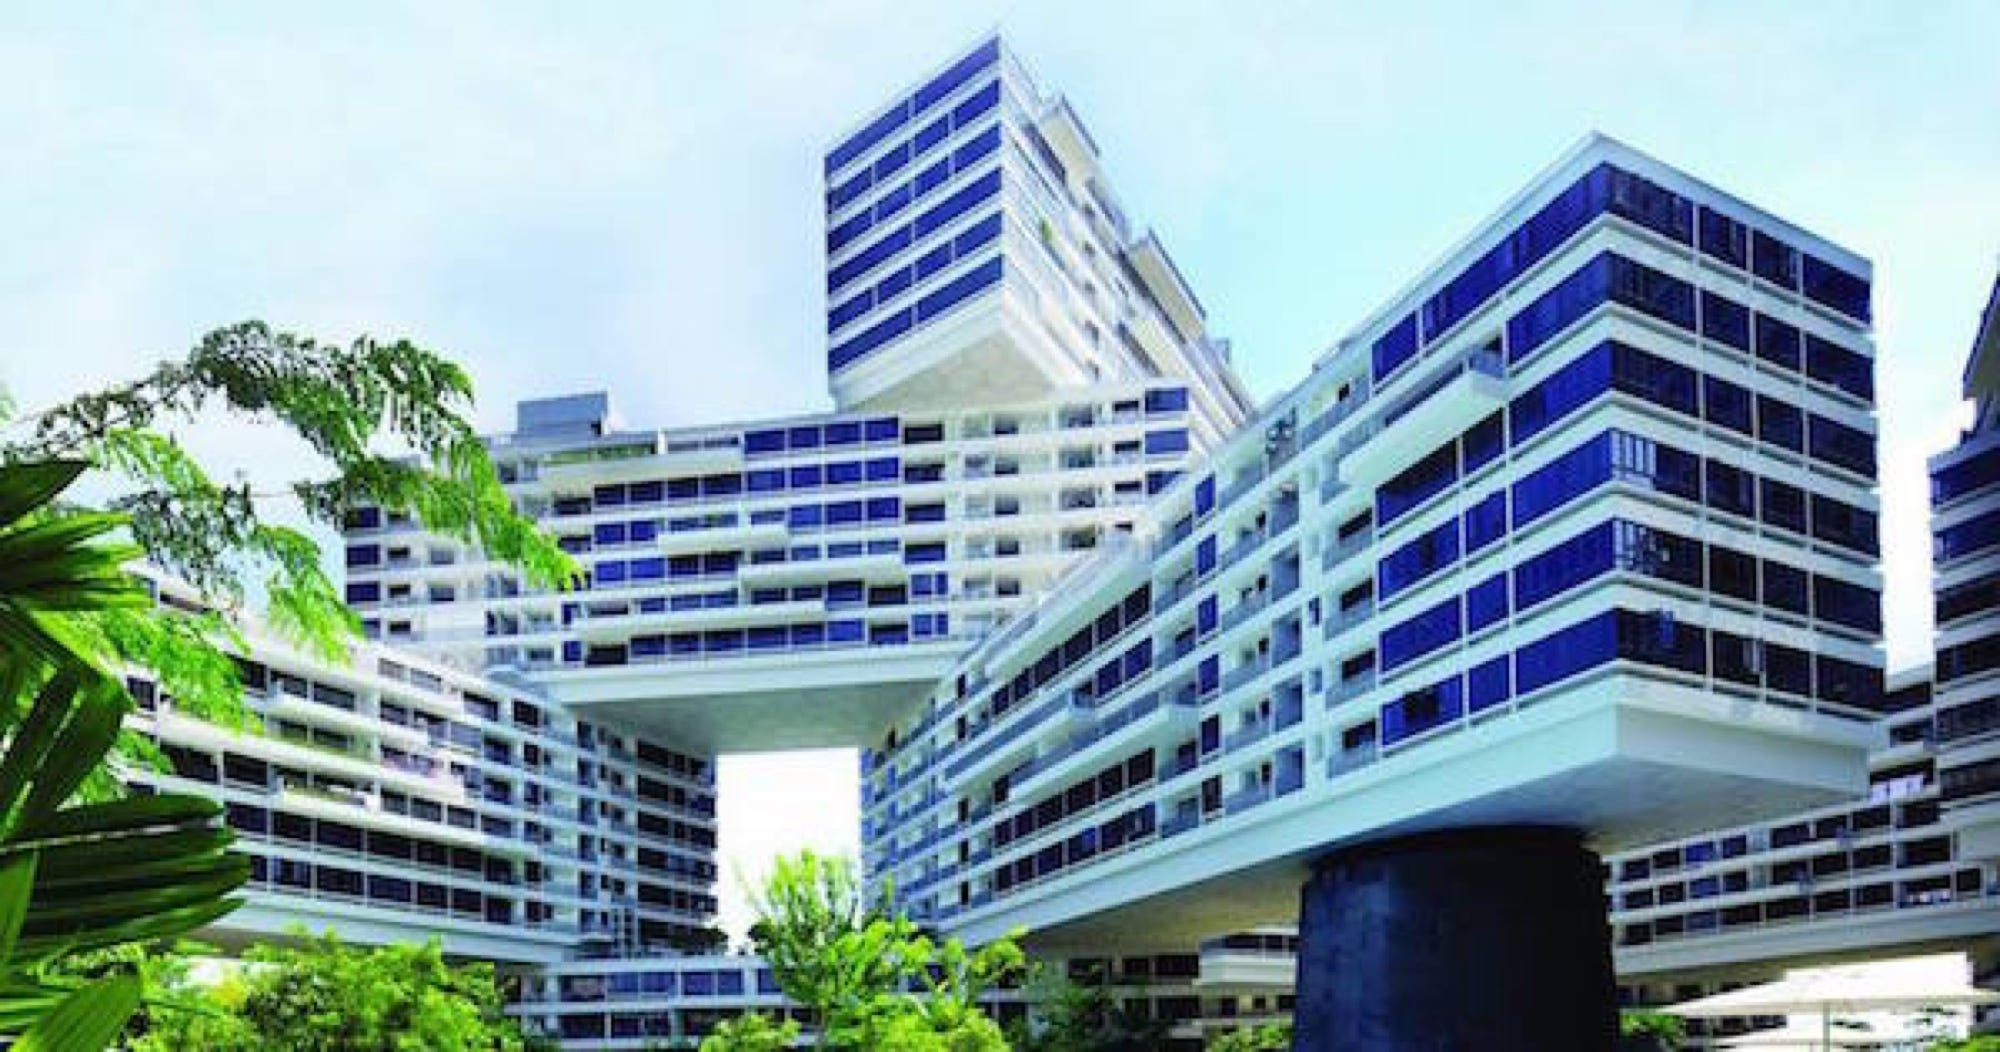 This Inception-Style Singapore Apartment Complex Is The Best Building In The World